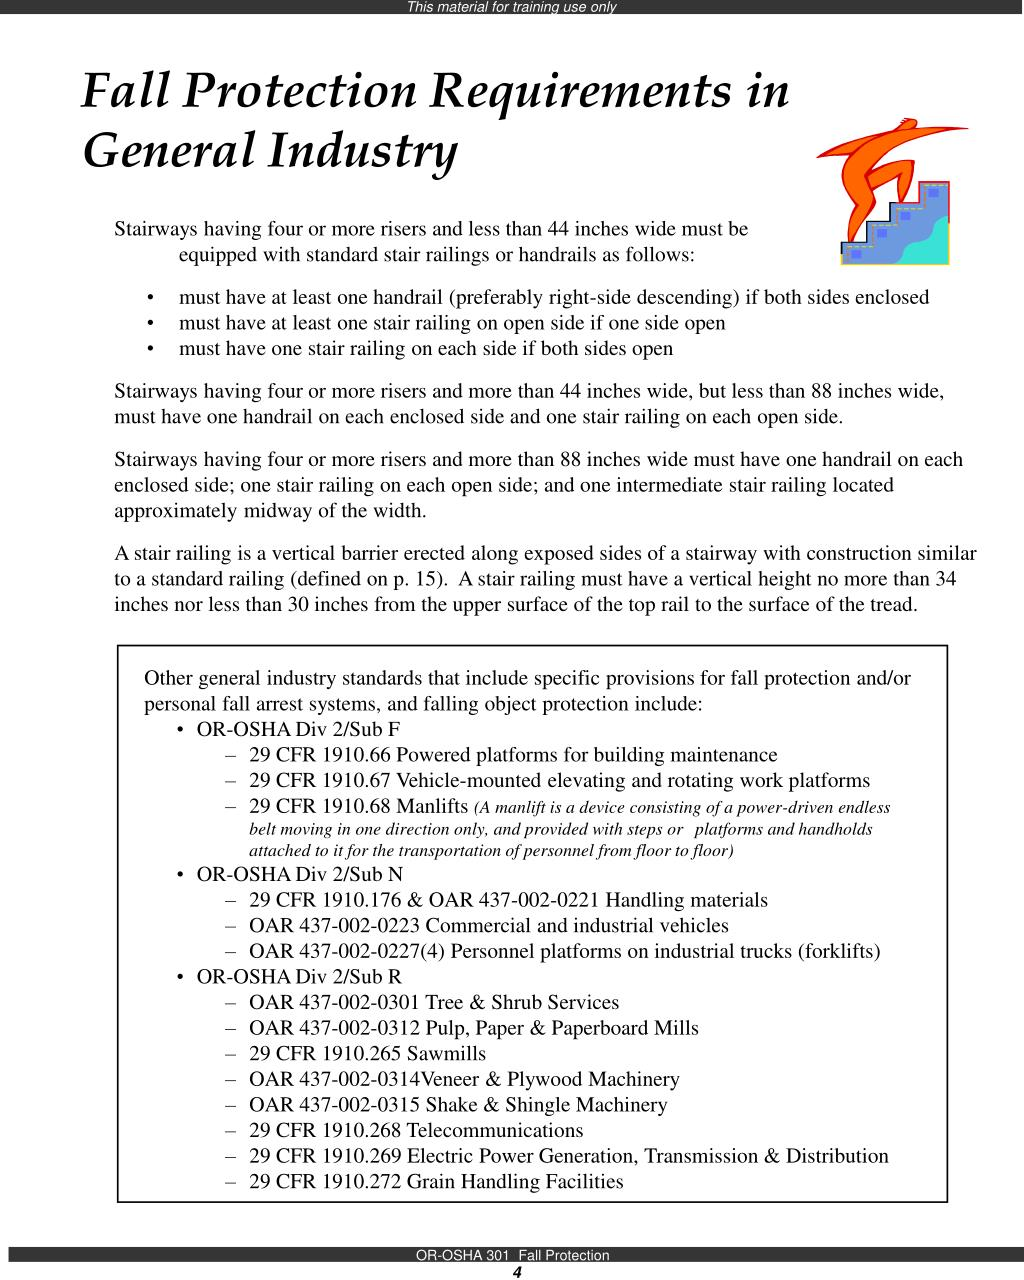 Fall Protection Requirements in General Industry